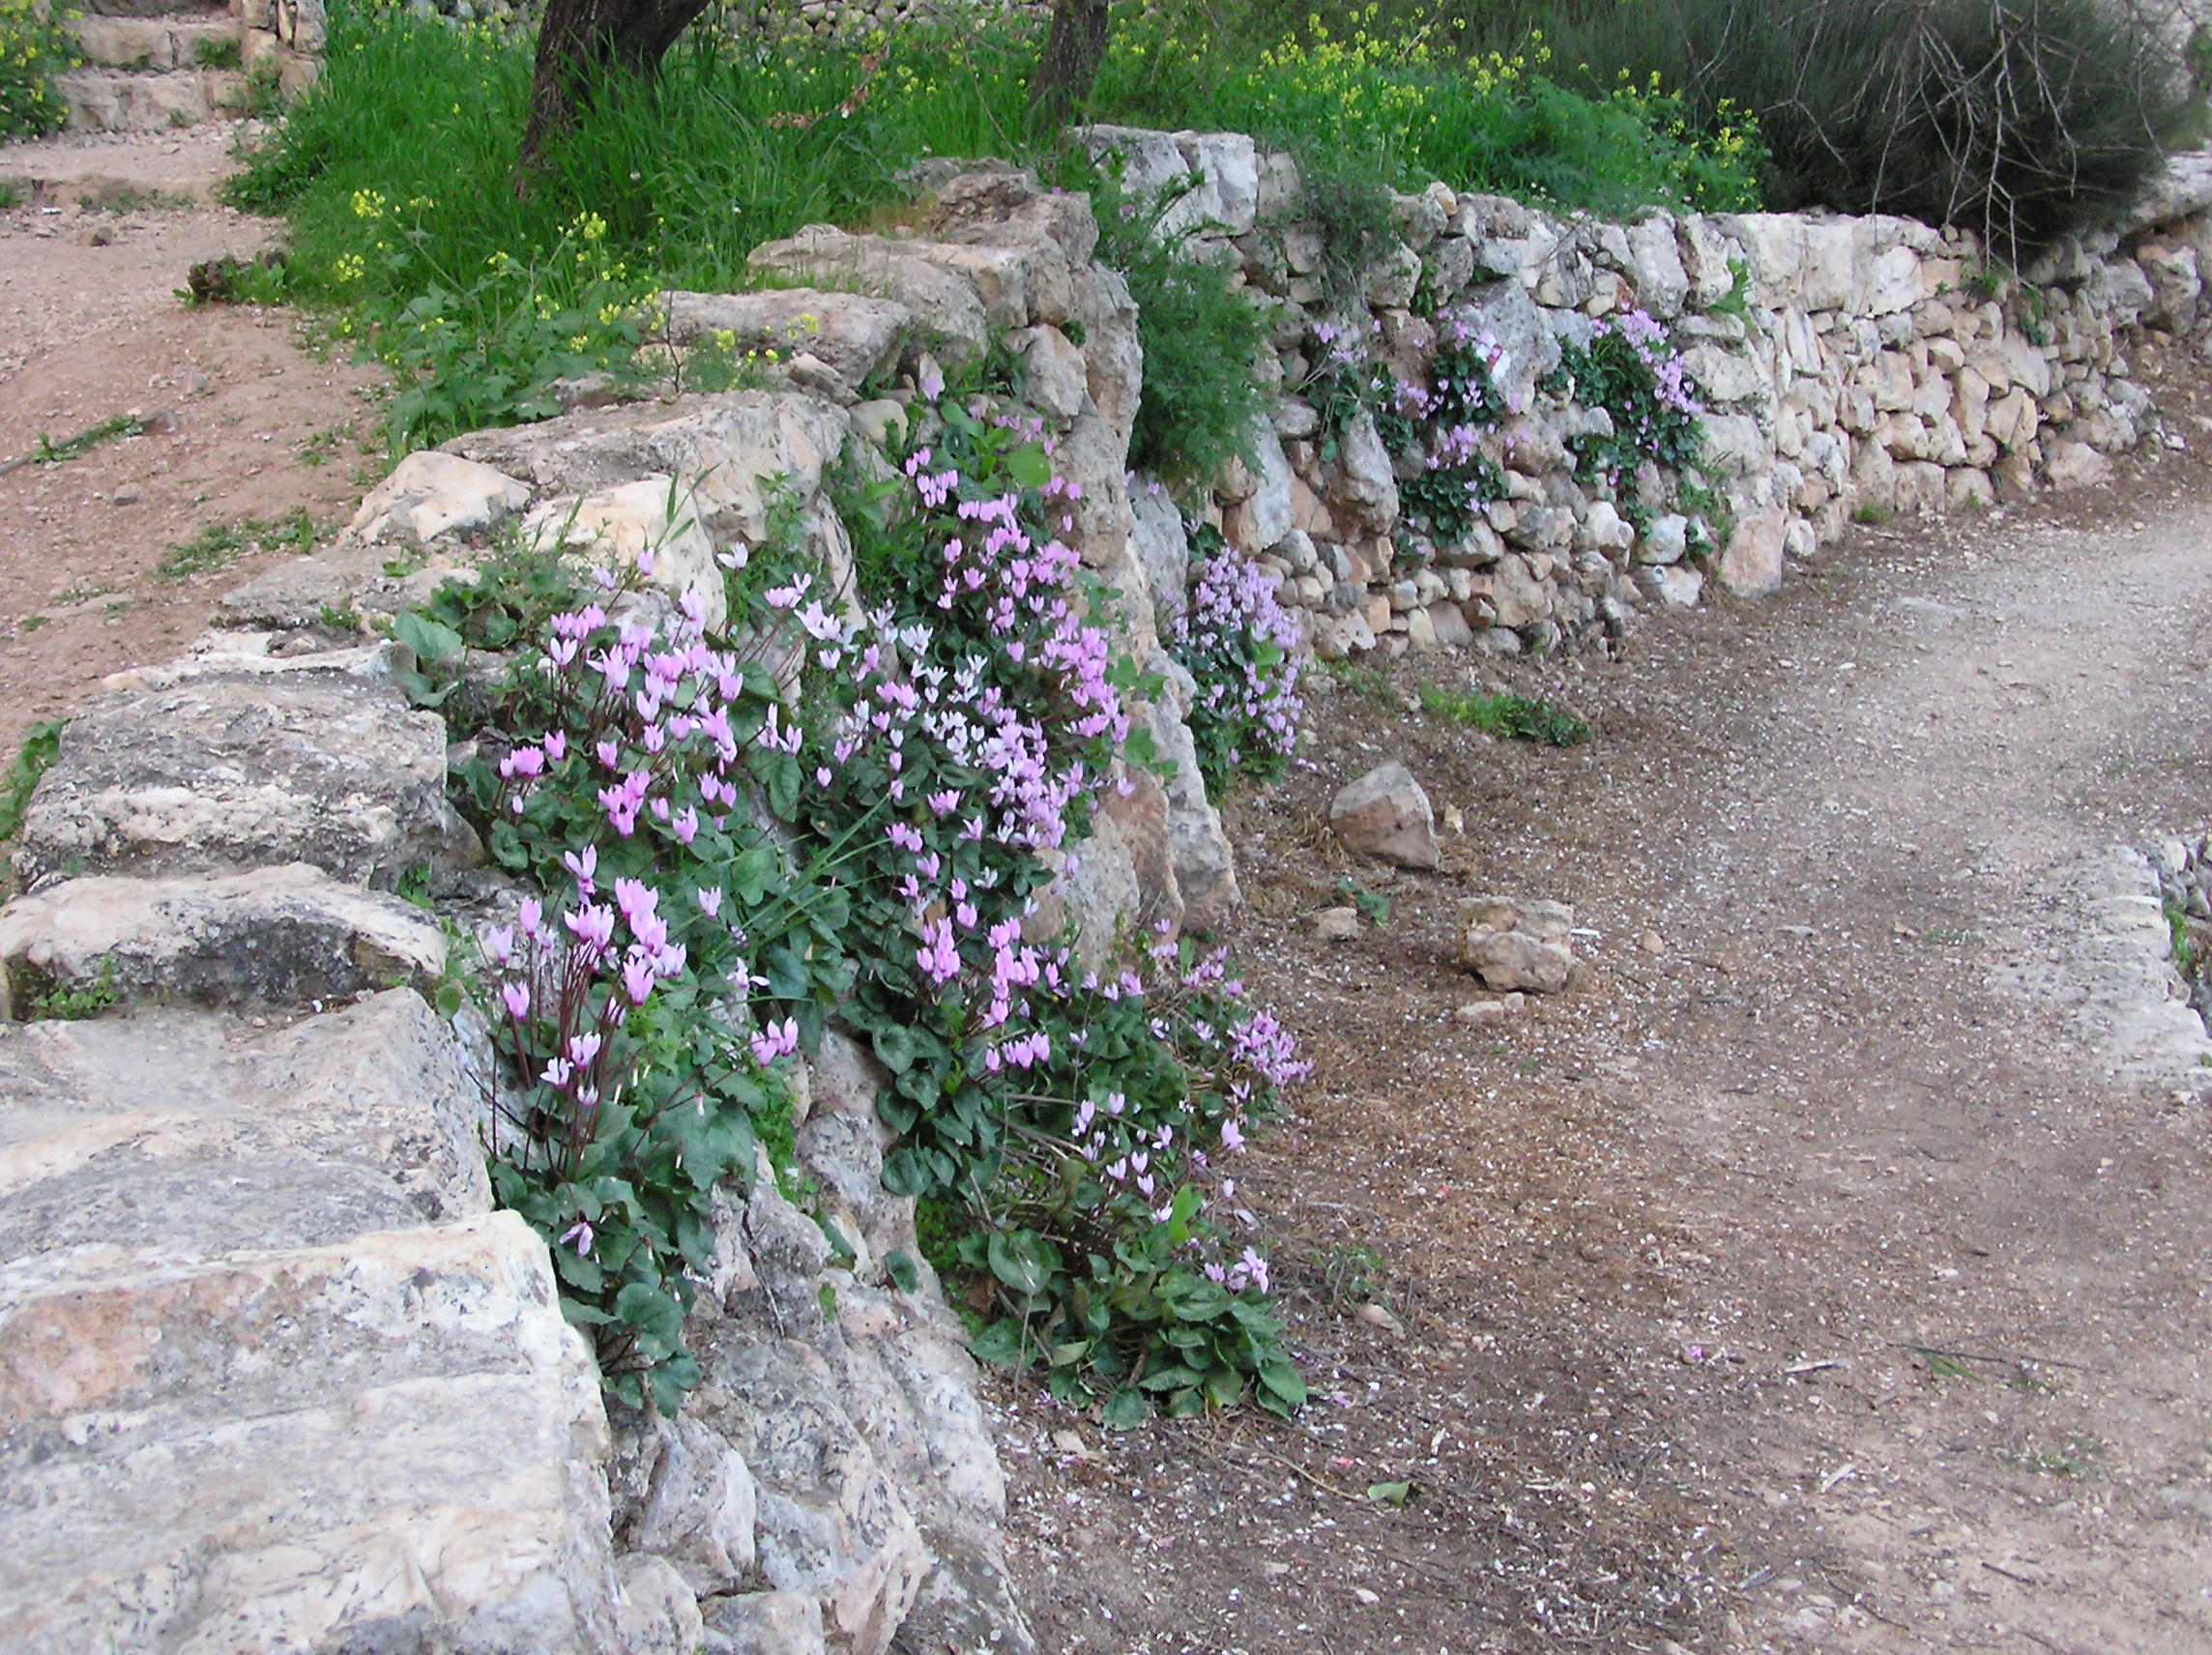 Sataf - صطاف : Sataff's Wild Cyclamen in full bloom